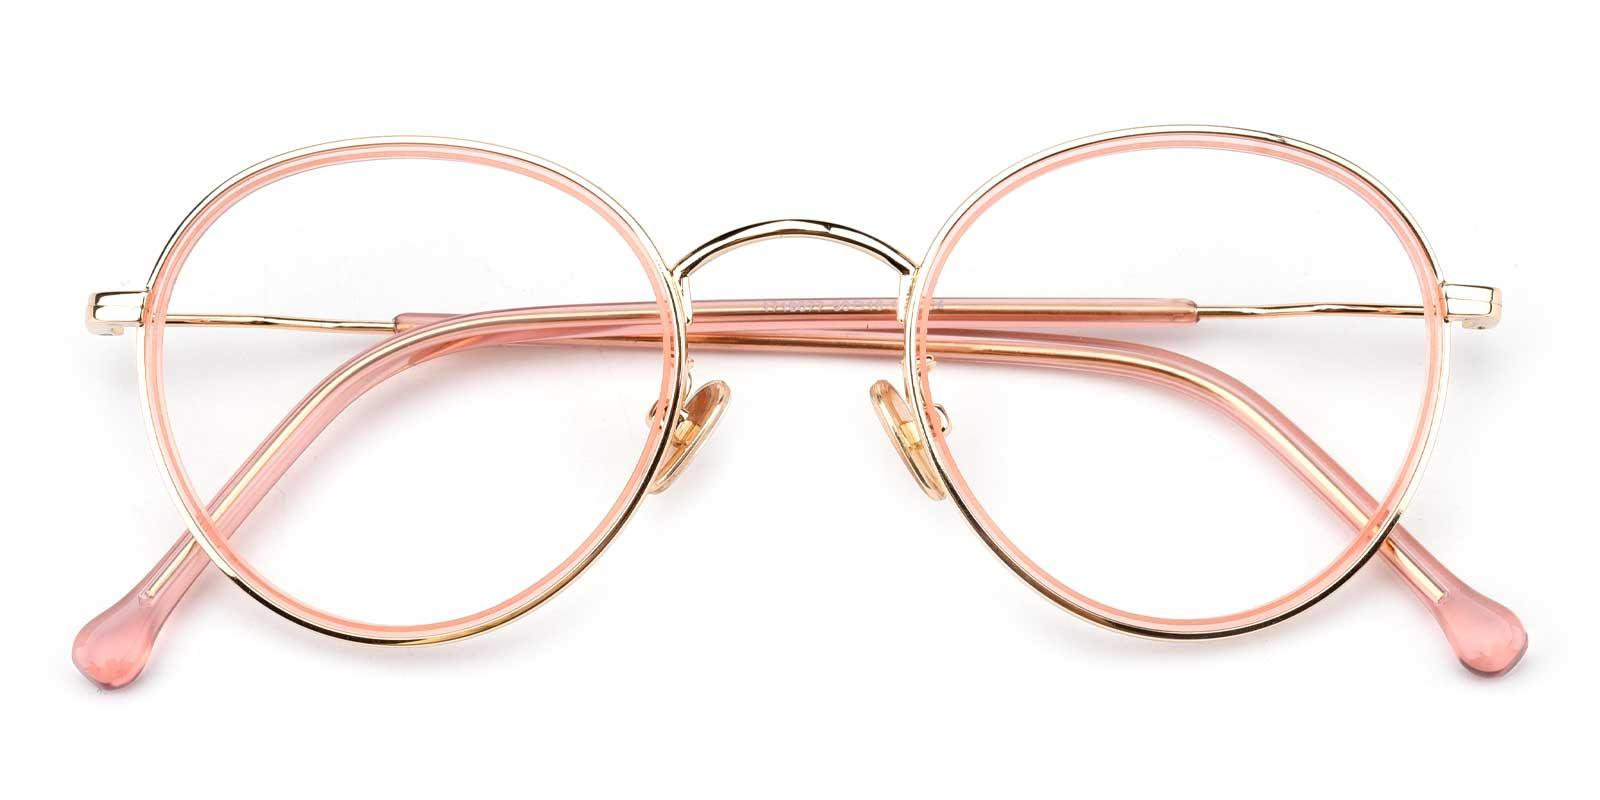 Jenny-Pink-Round-Combination-Eyeglasses-detail